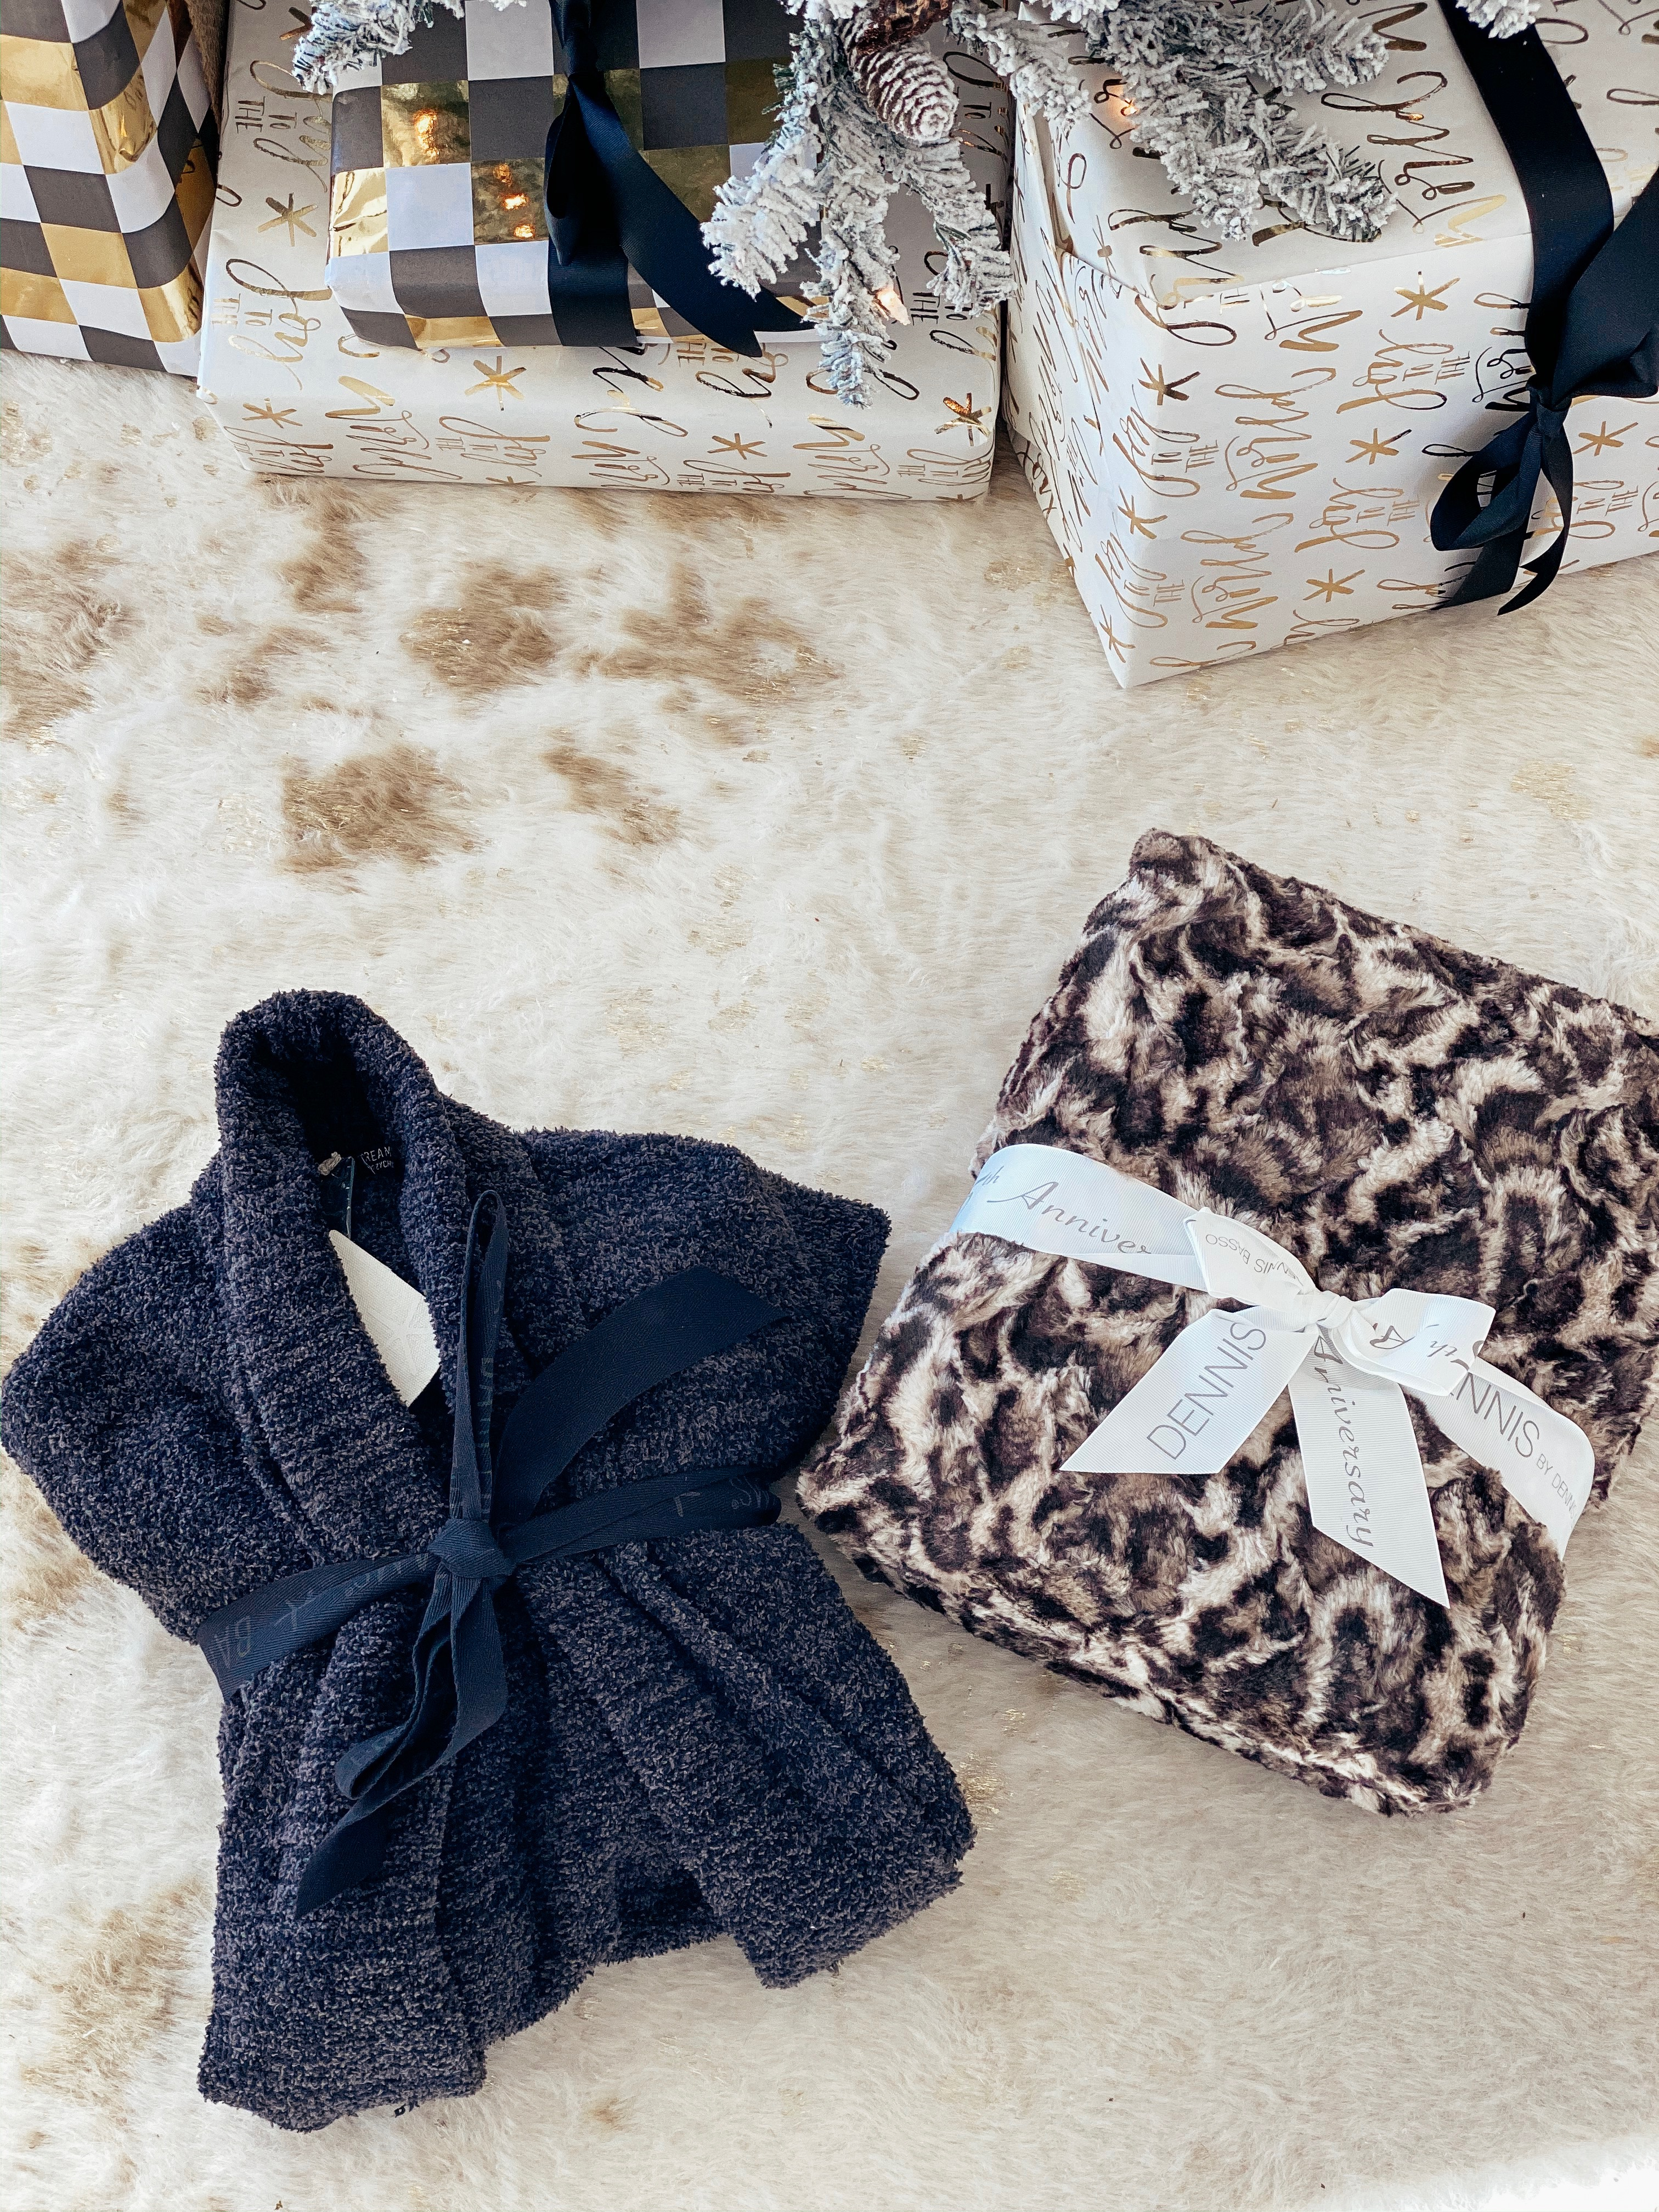 The coziest gifts for the holidays! Barefoot dreams cardigan and fur blankets.